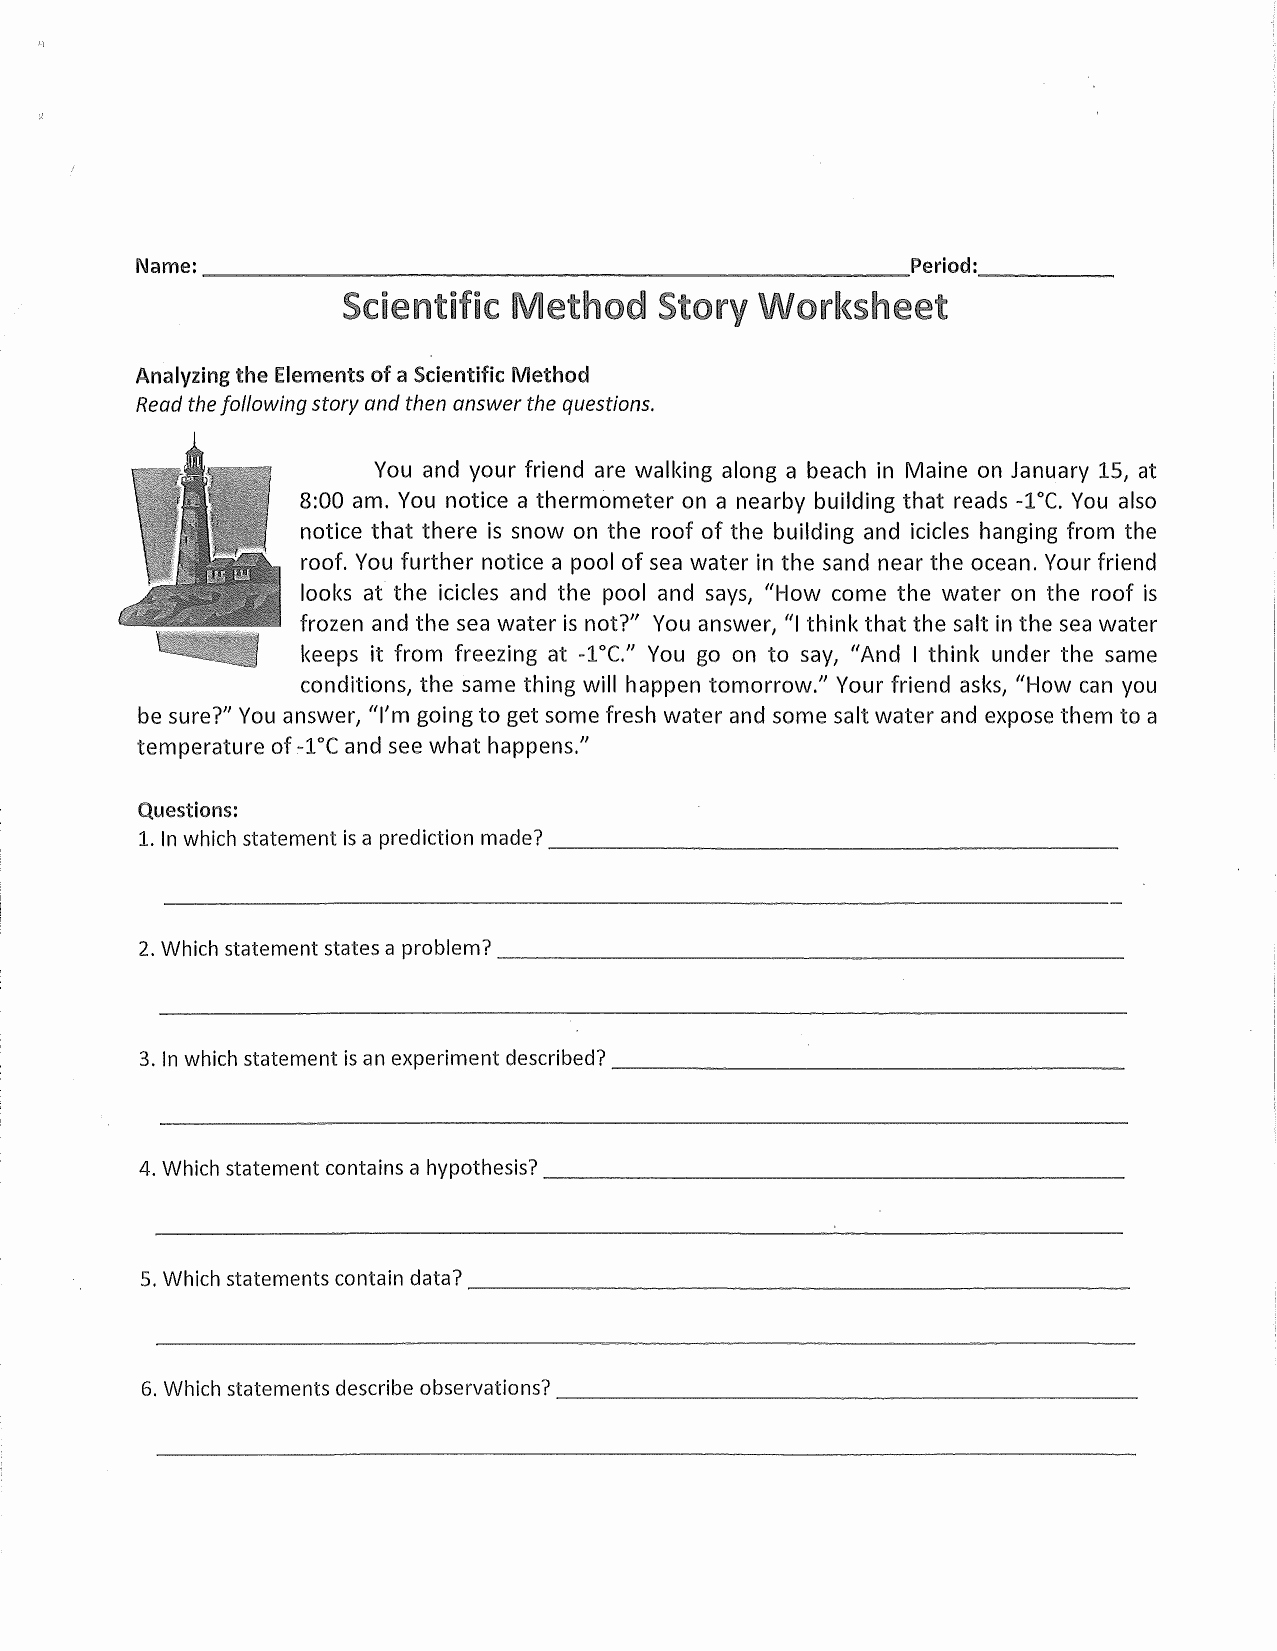 Scientific Method Worksheet Answer Key Luxury Scientific Method Story Worksheet